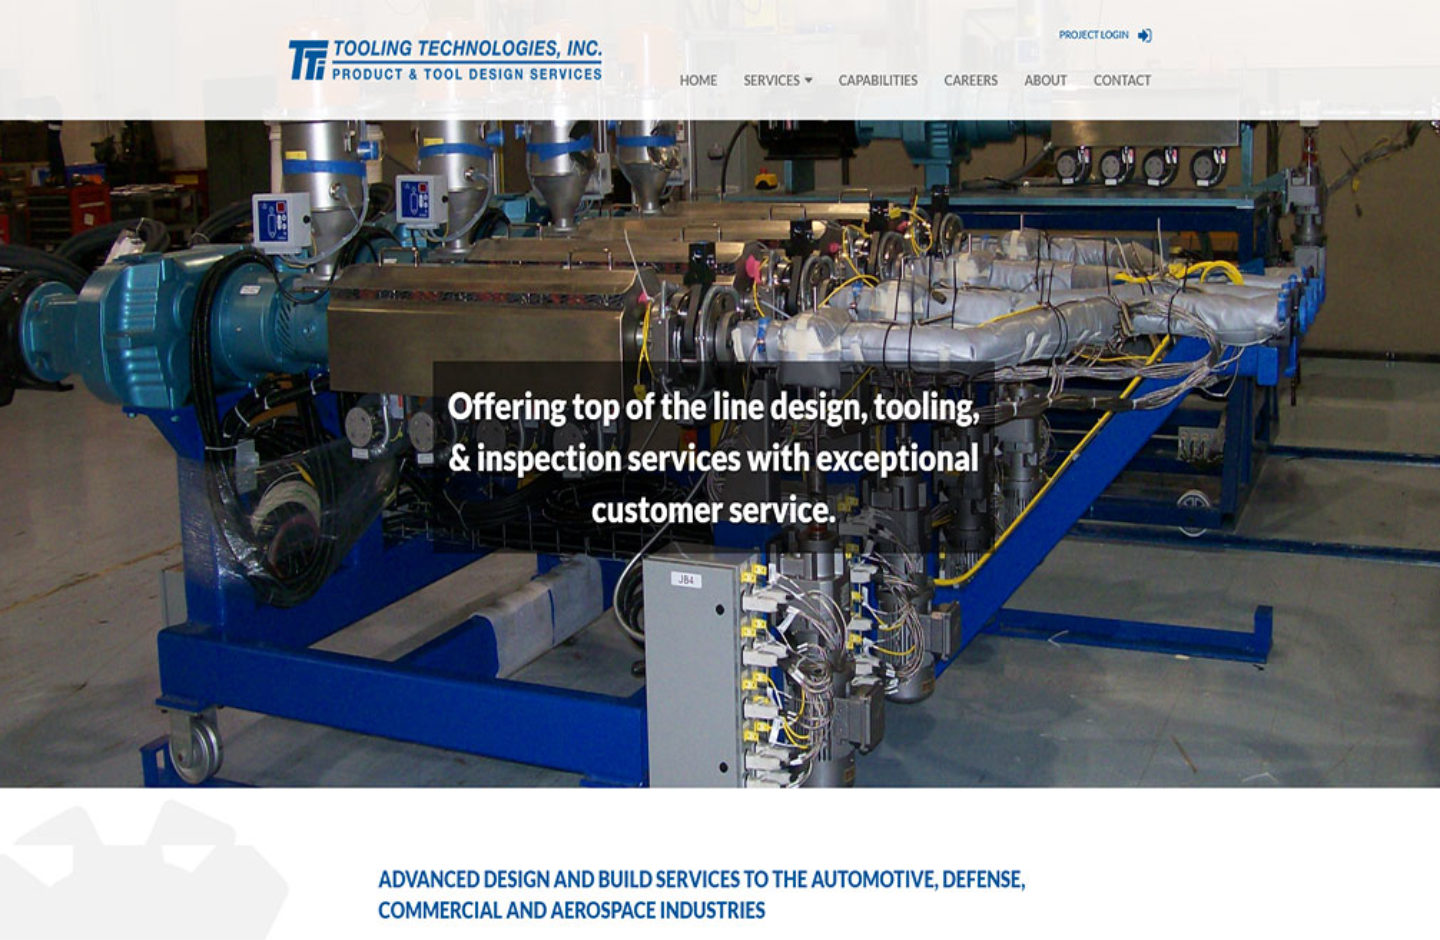 Tooling Technologies